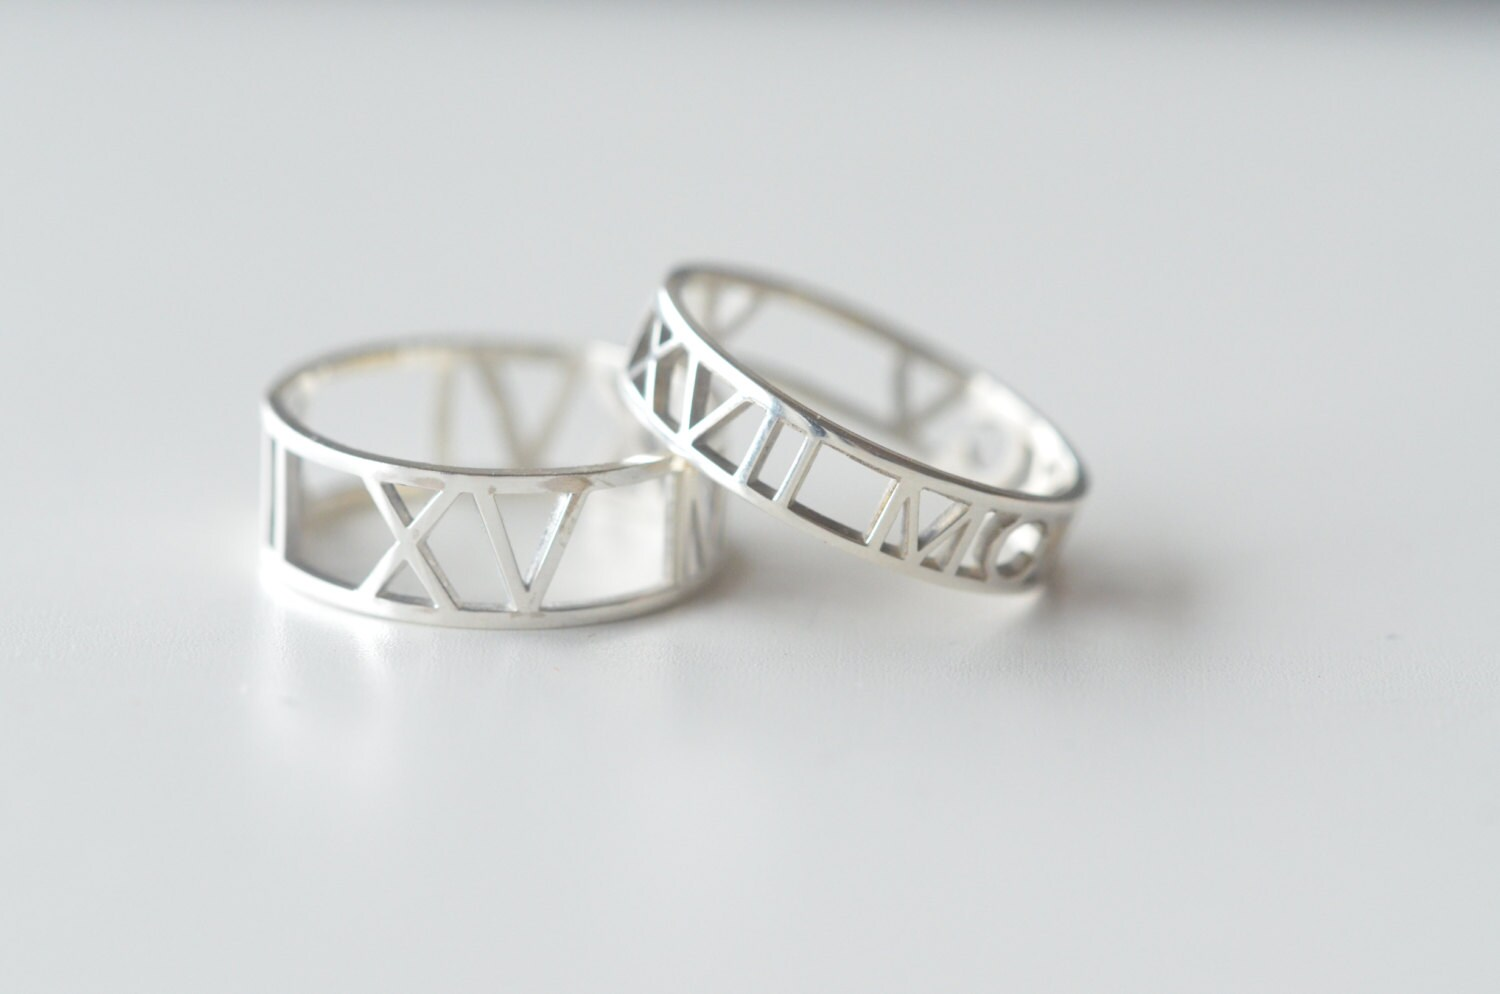 Couples Ring Couples wedding date ring Roman Numeral Ring ...